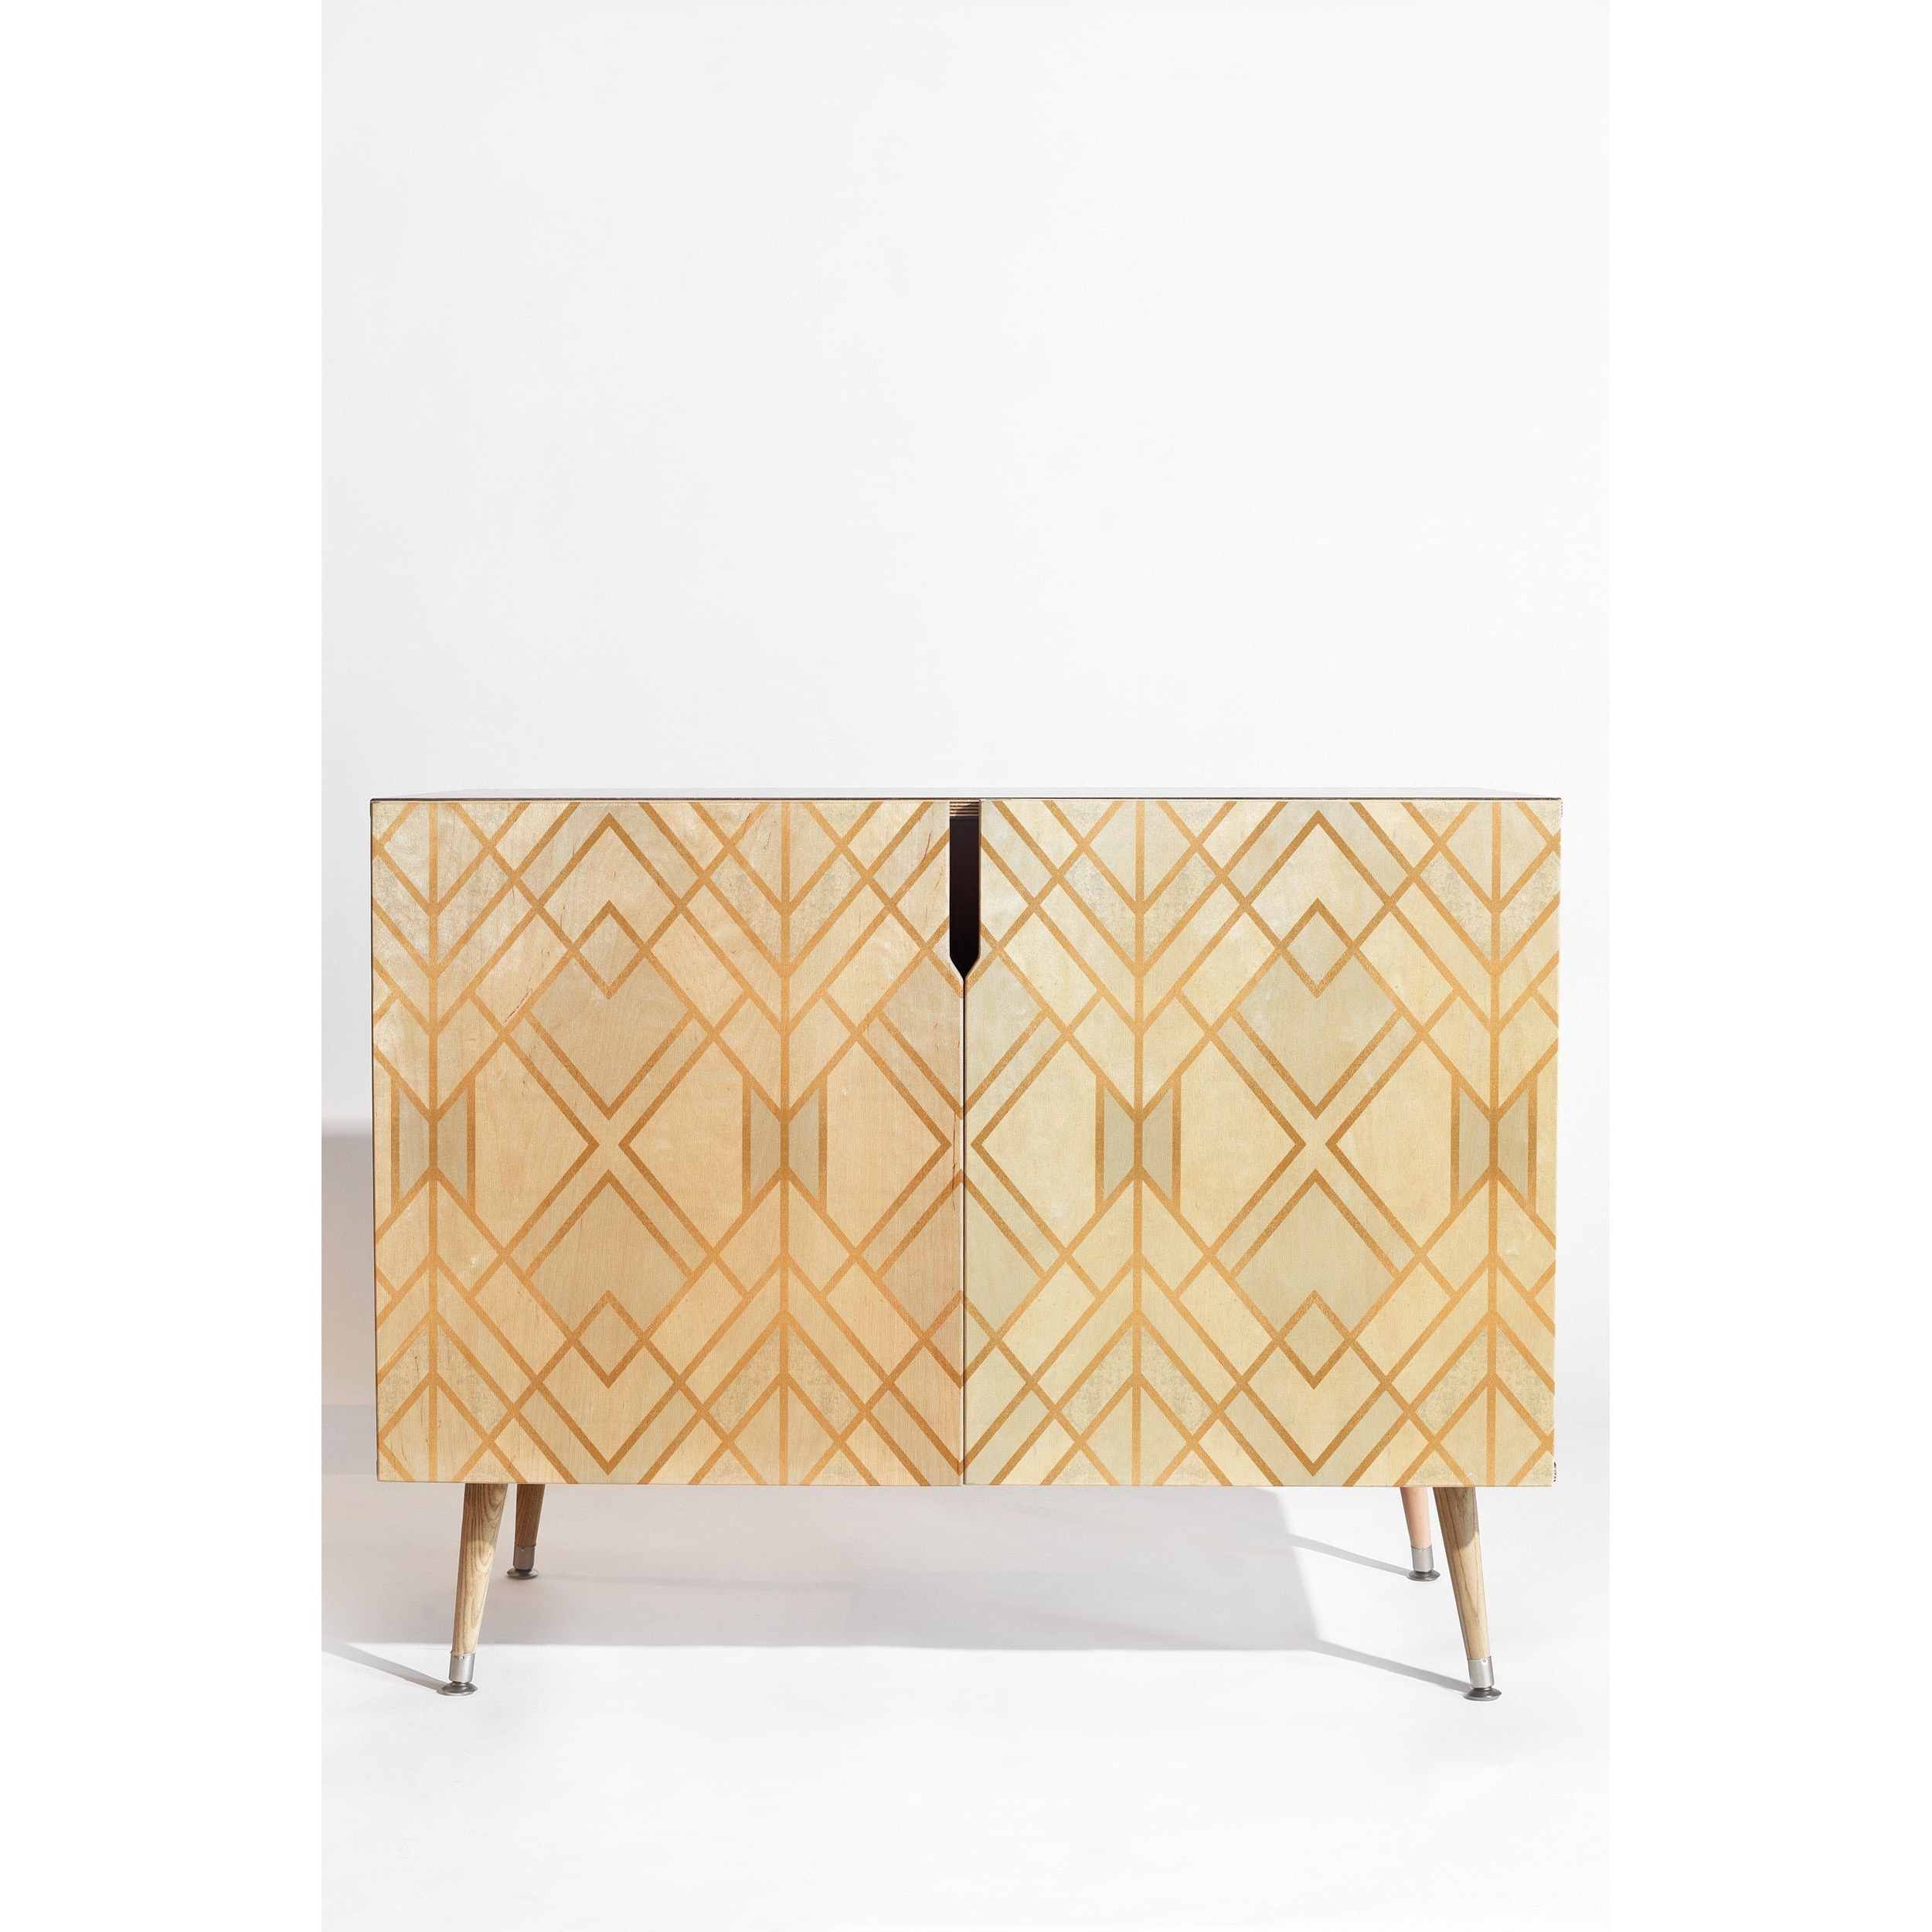 Deny Designs White Geometric Wood Credenza In 2019 | Home With Modele 7 Geometric Credenzas (View 12 of 20)